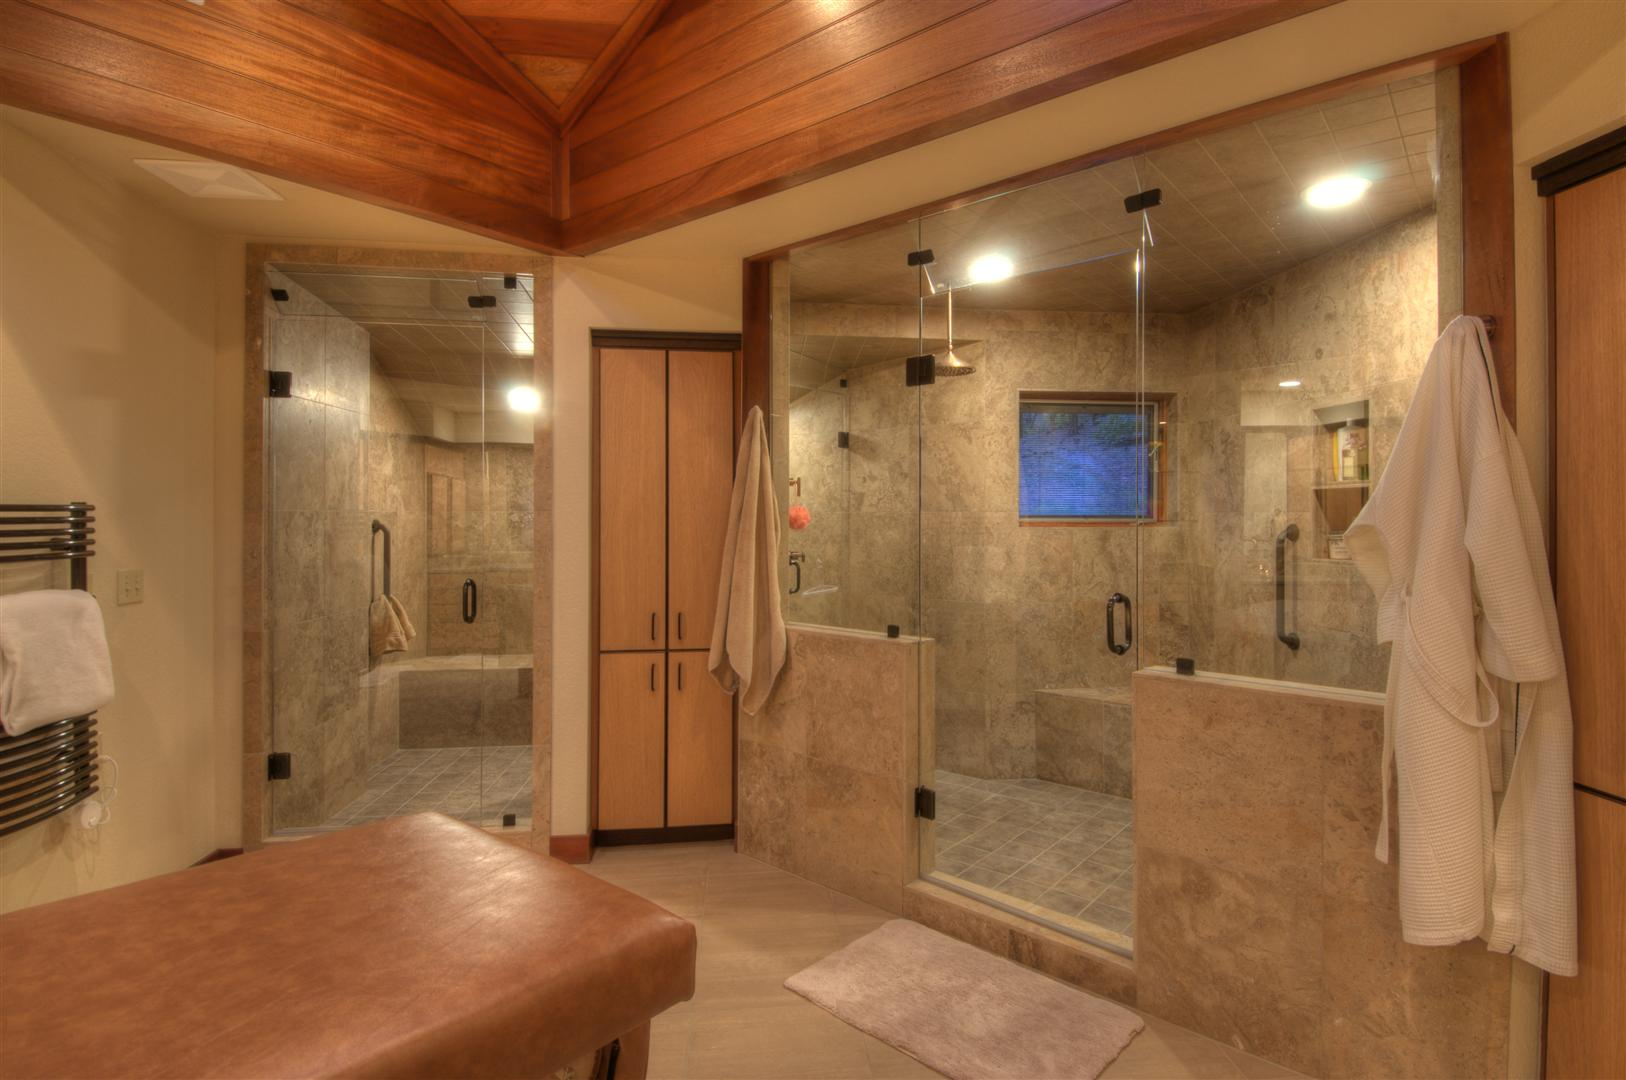 Bathroom Ideas Large big bathroom designs - creditrestore